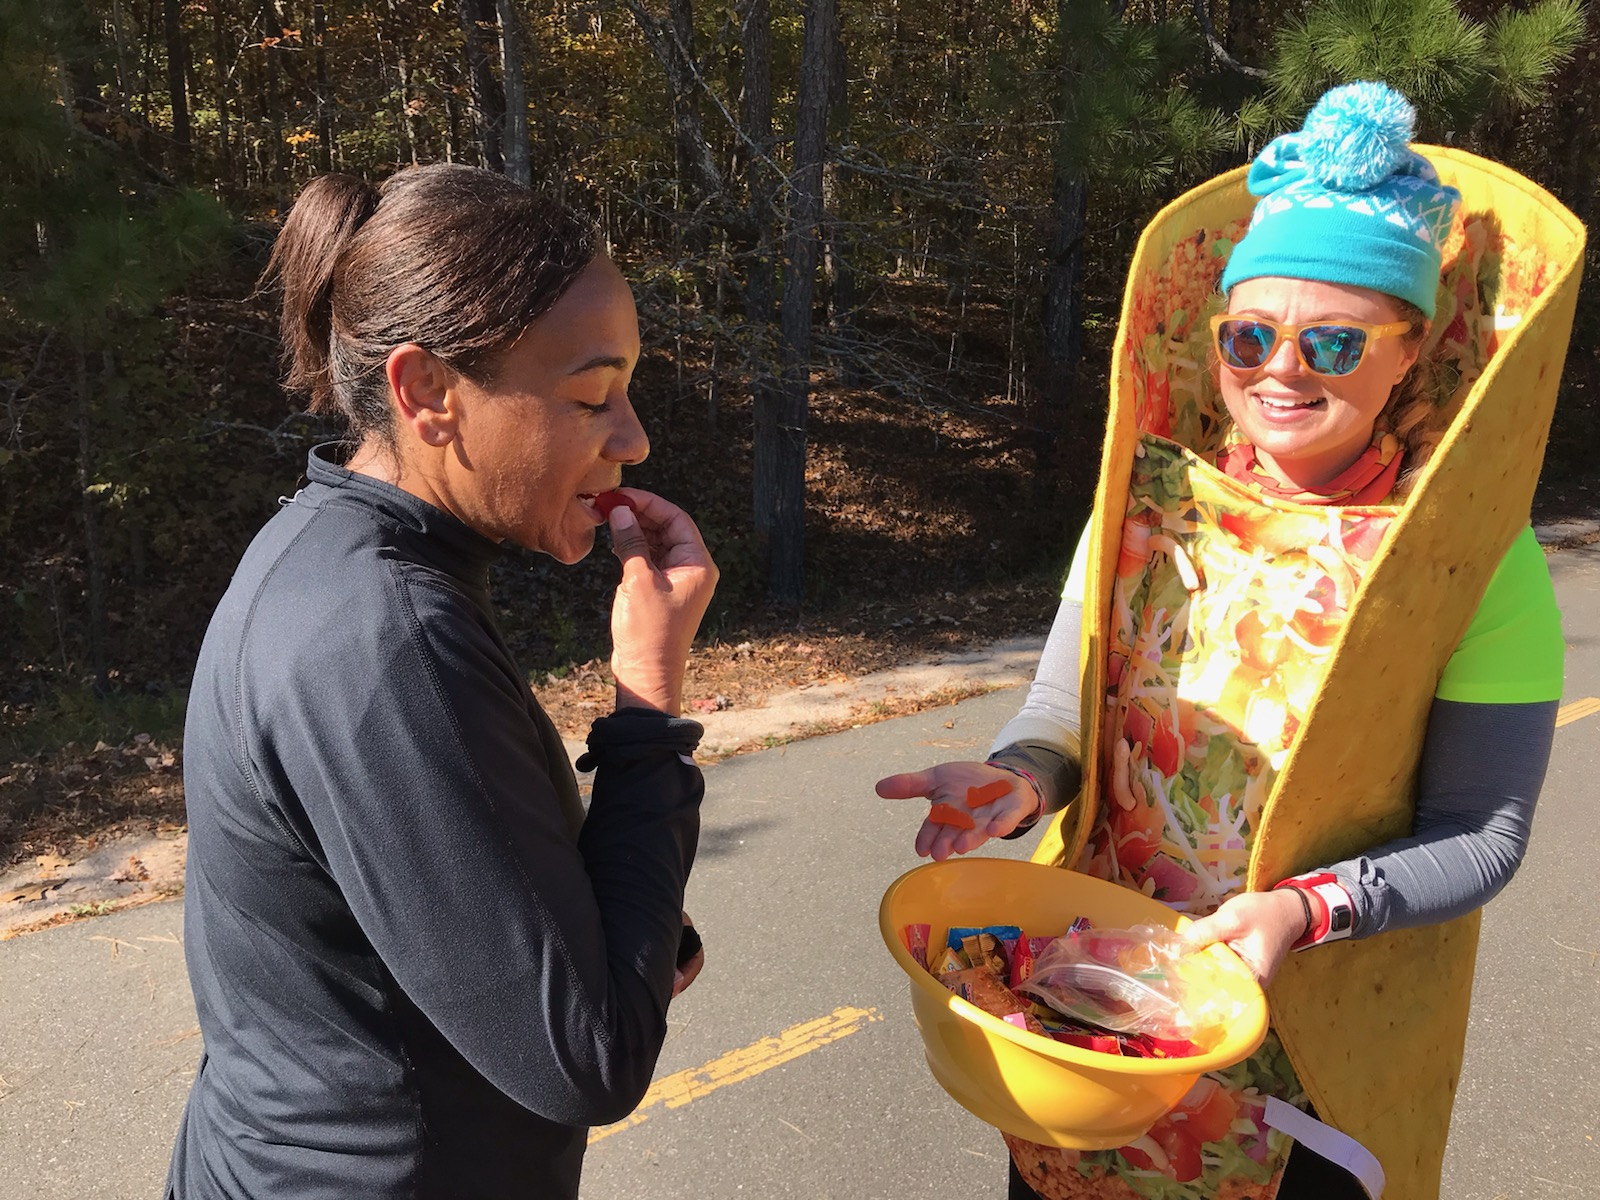 Crystal at least was a good sport; she paused on her marathon to sample Heather's dick gummies